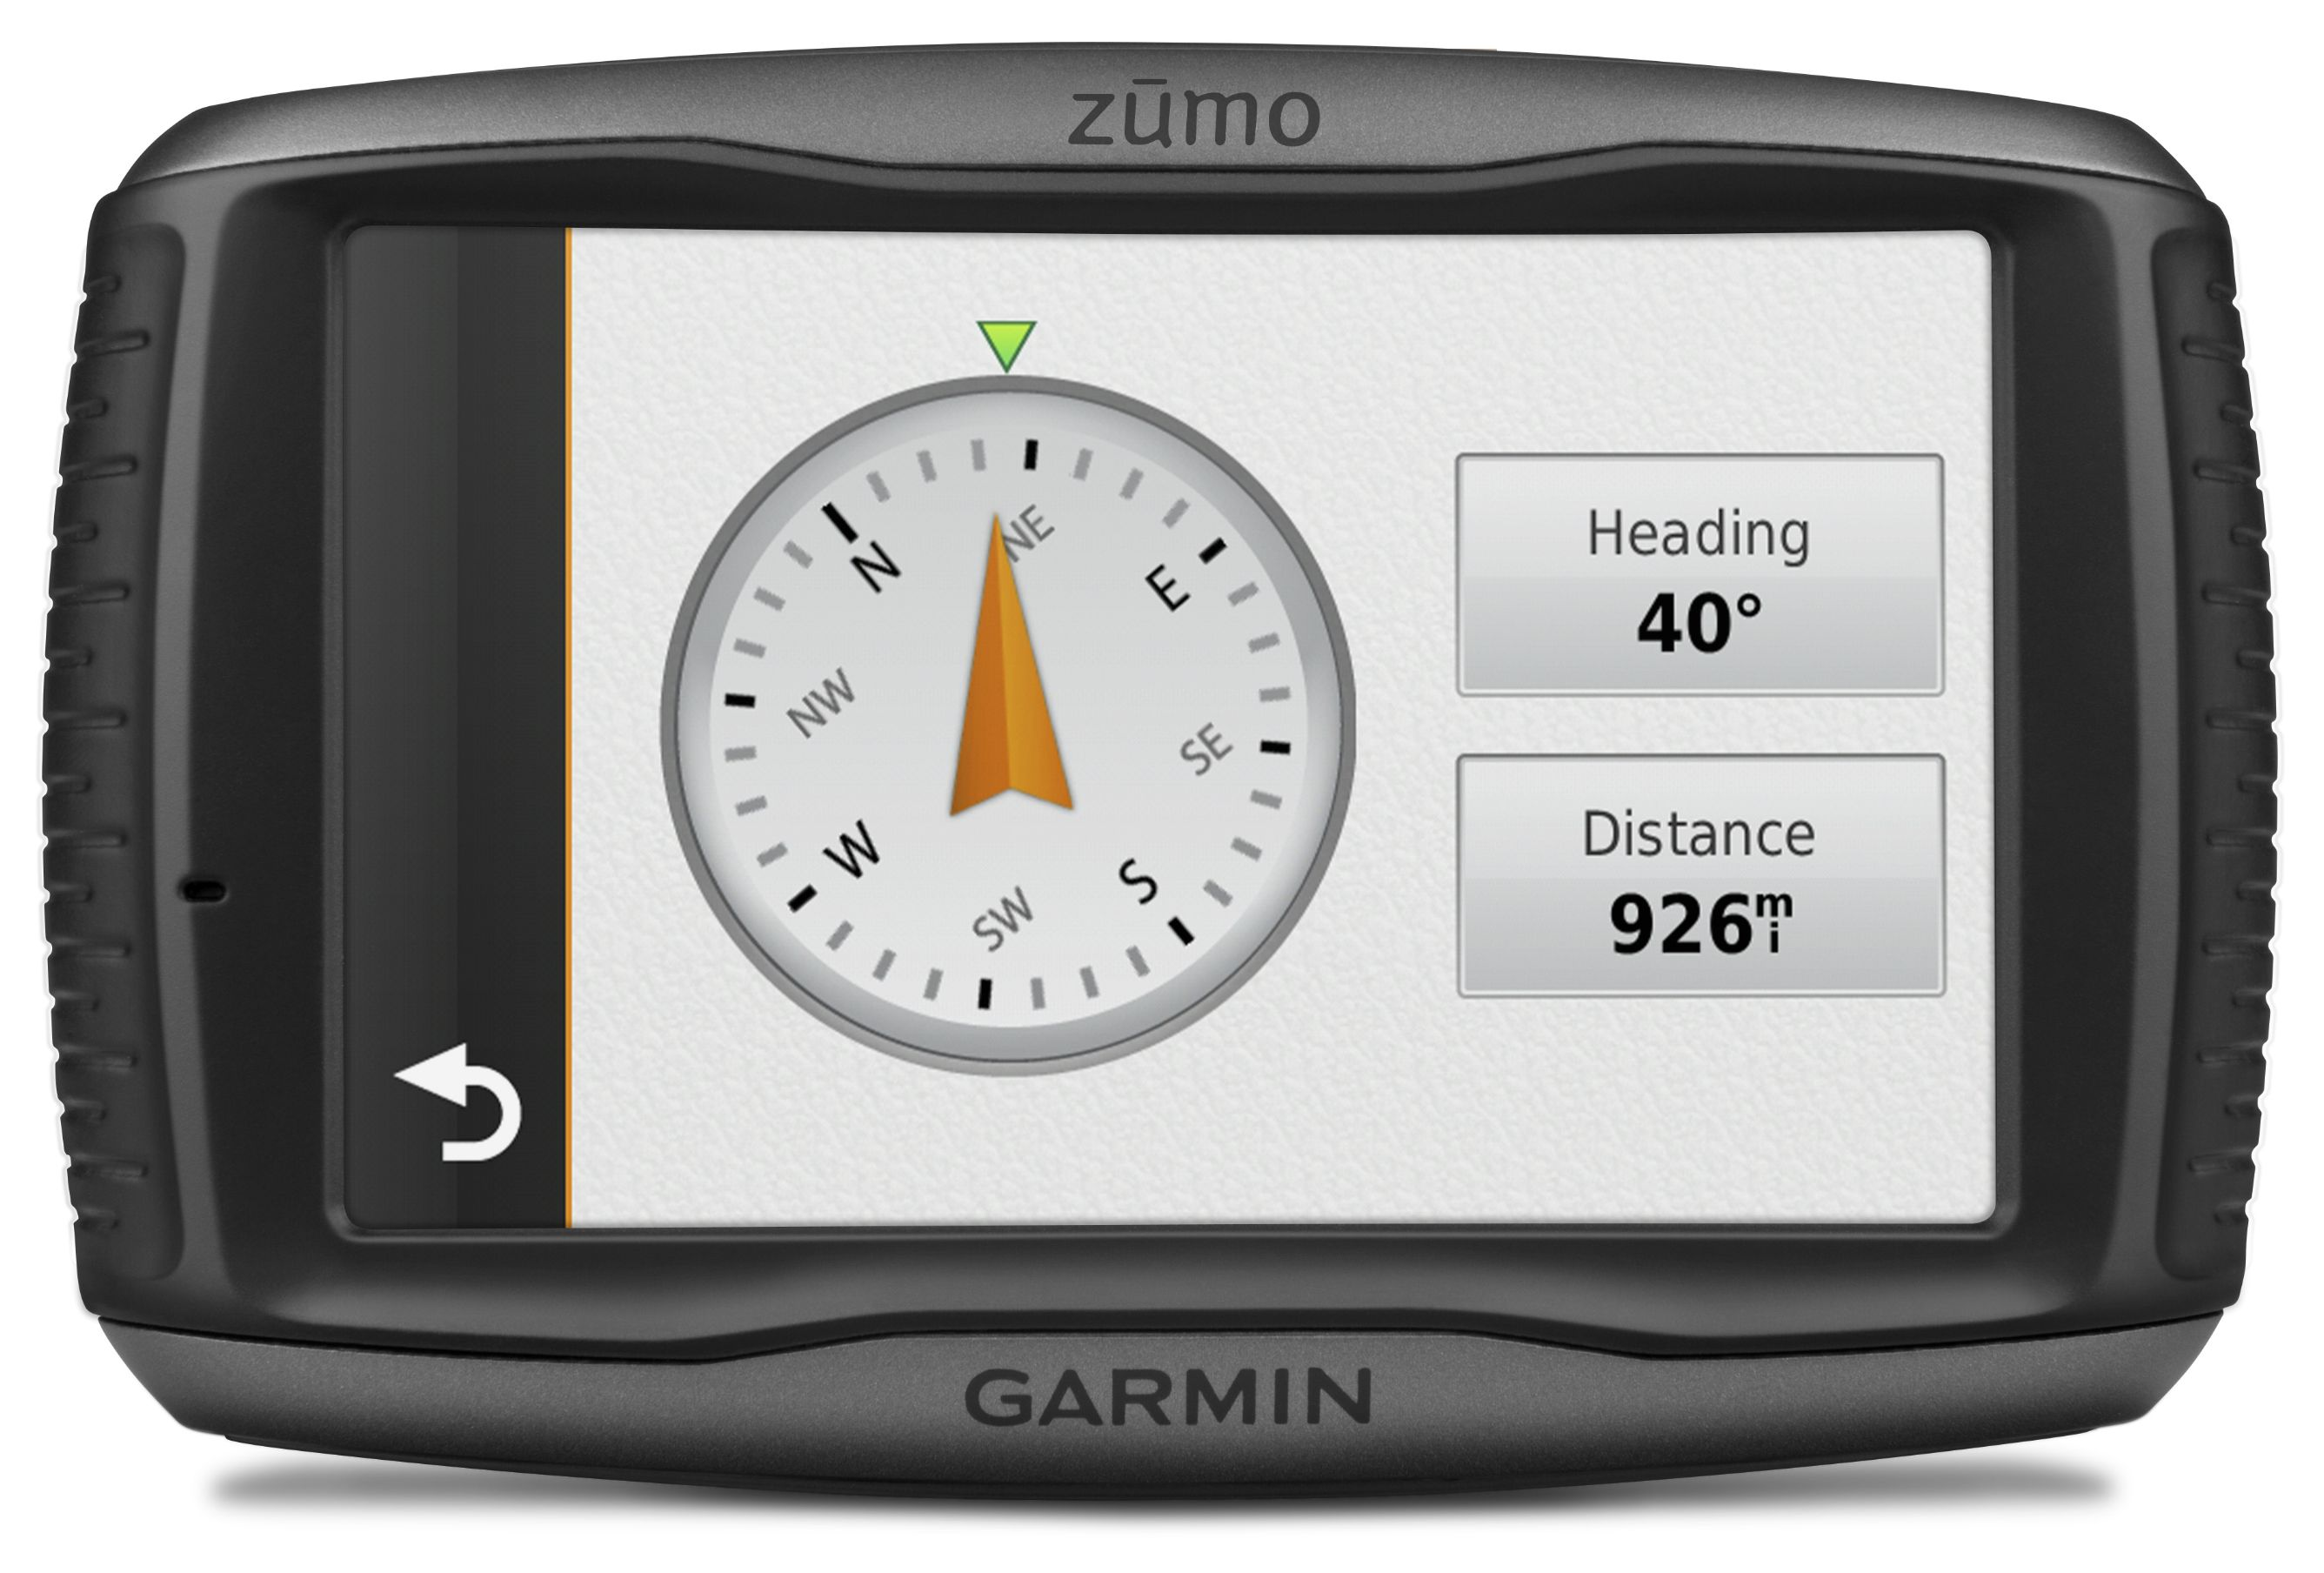 garmin_zumo590_lm_motorcycle_gps garmin zumo 590lm motorcycle gps revzilla garmin motorcycle wiring harness at edmiracle.co